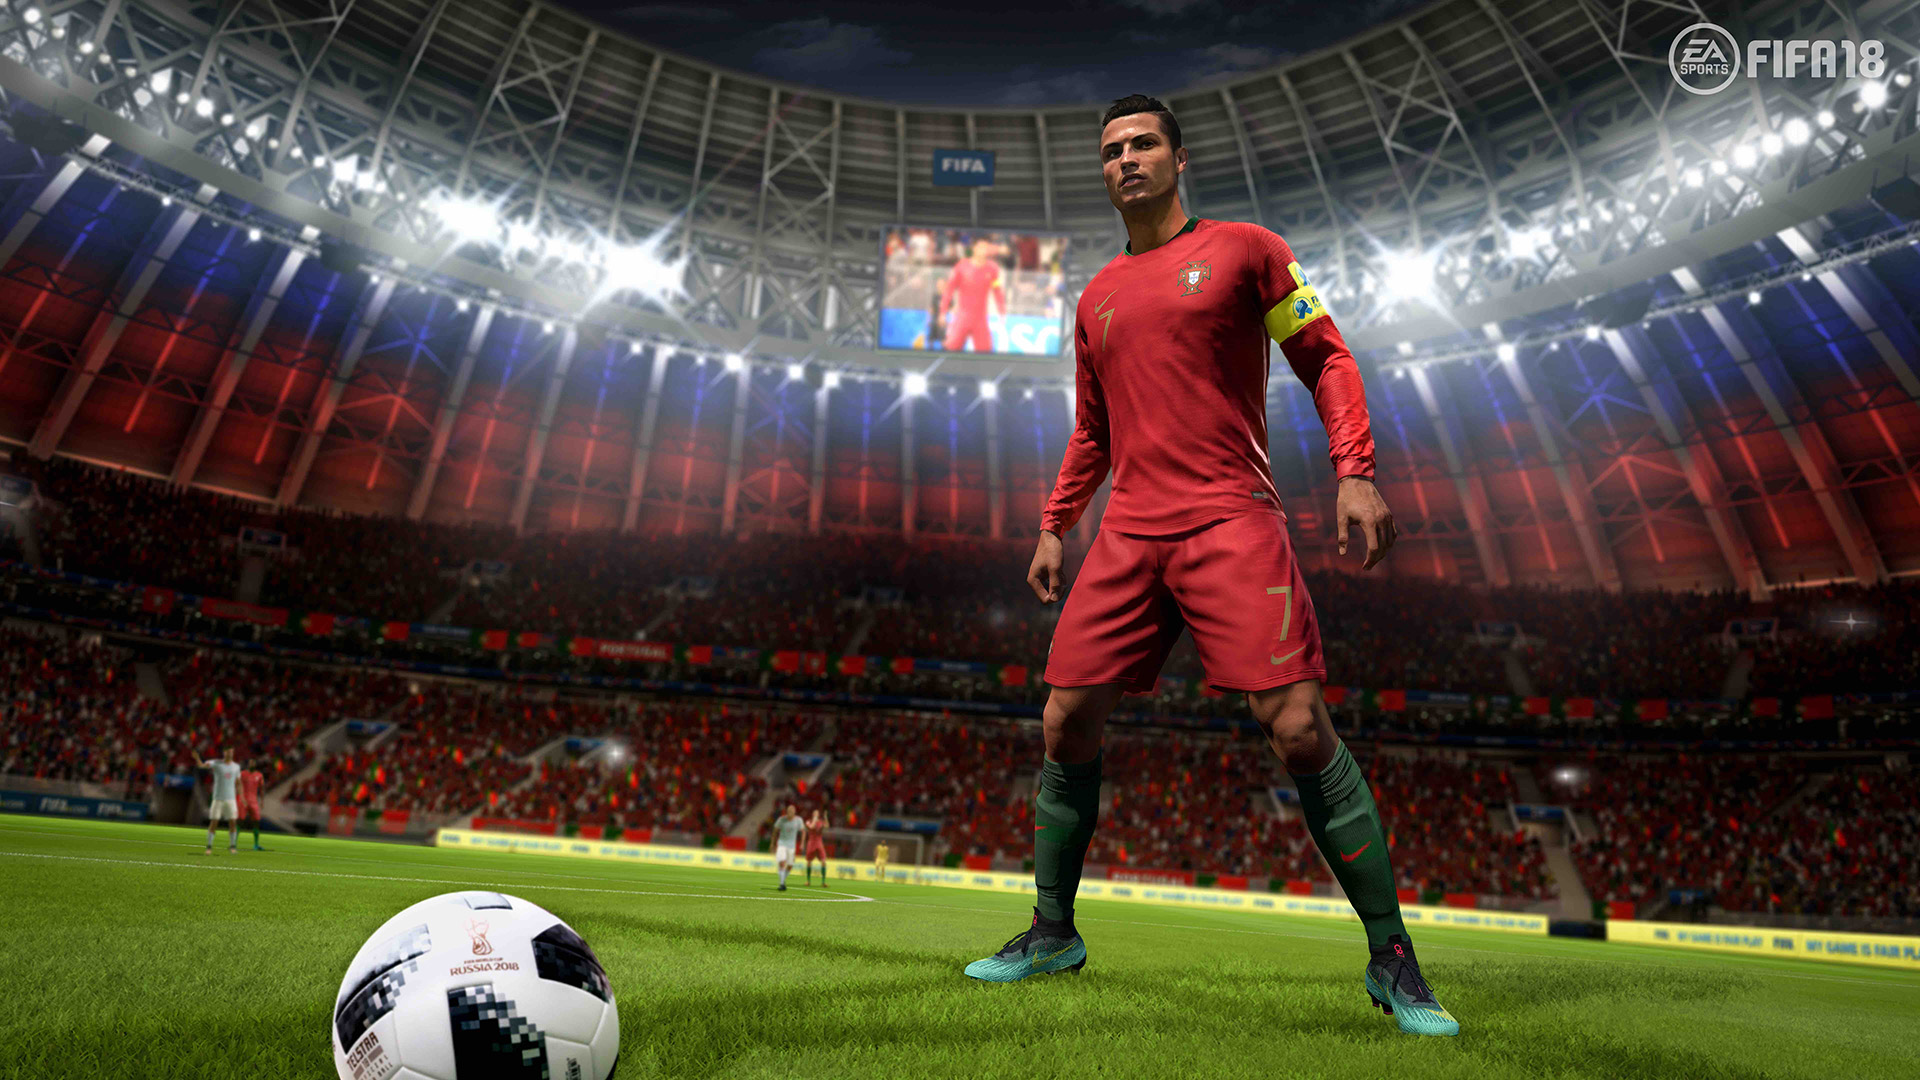 FIFA 18 World Cup video game: When is it released, how to download